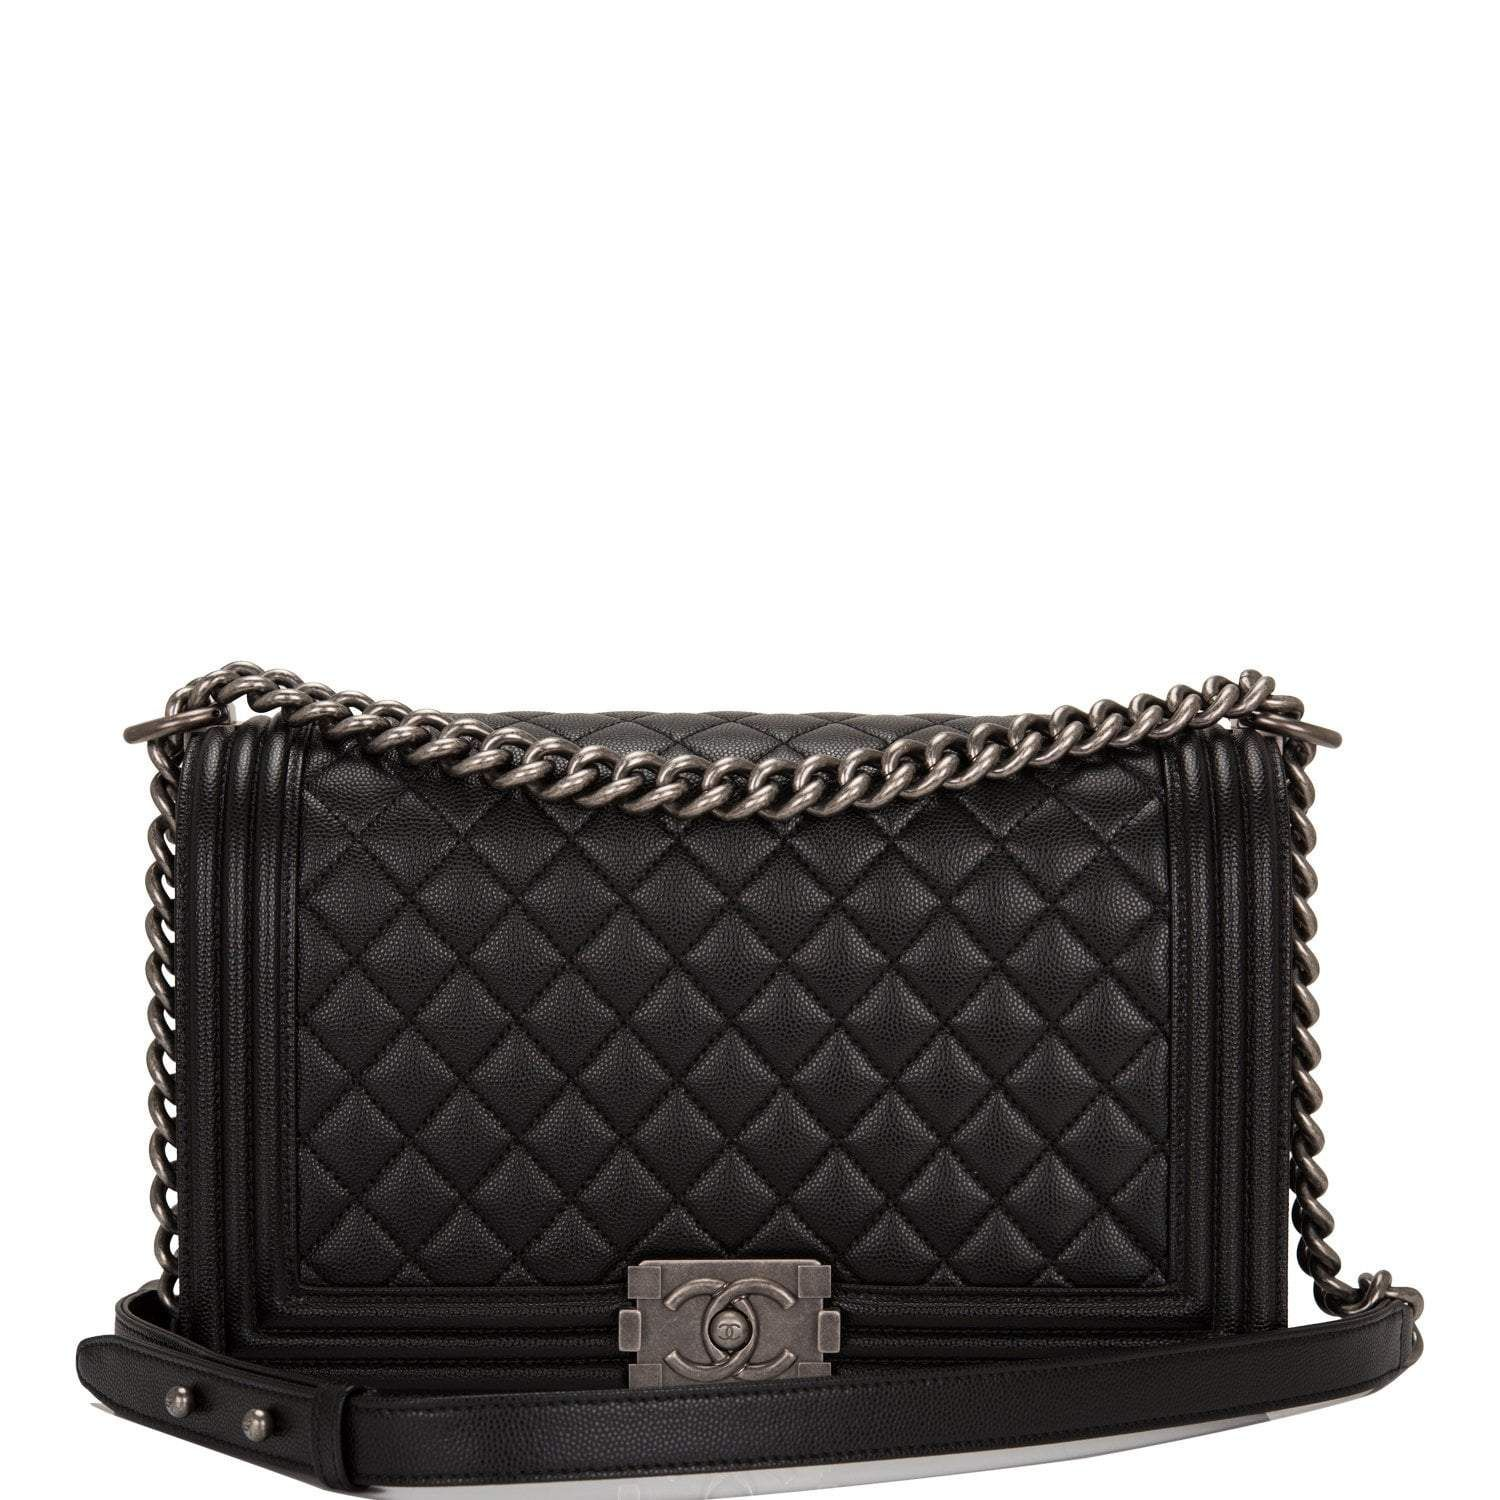 03aded2a8badea Chanel Black Quilted Caviar New Medium Boy Bag in 2019 | Chanel ...